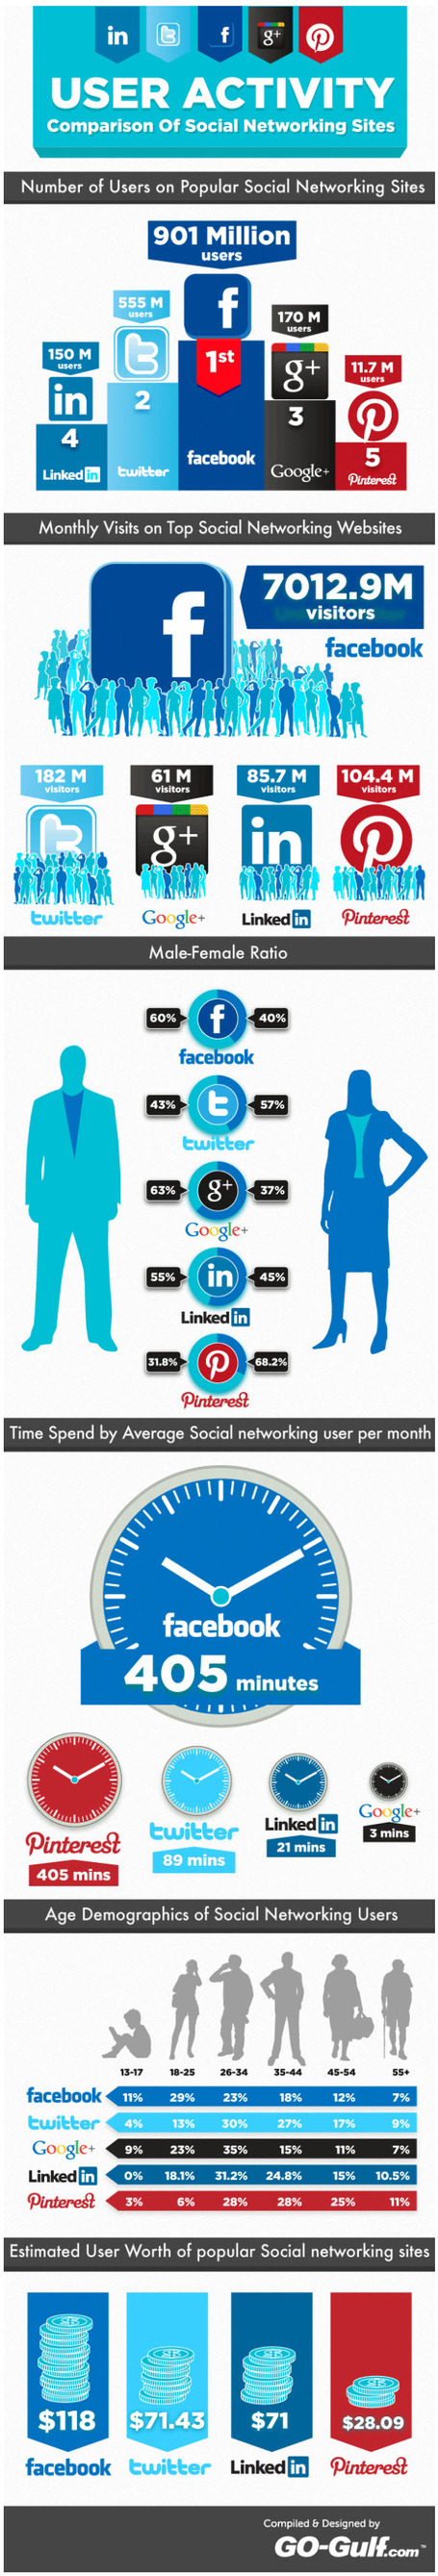 Social Network Tribes Gaining Momentum - The Latest Findings [Infographic] | Virtual Options: Social Media for Business | Scoop.it